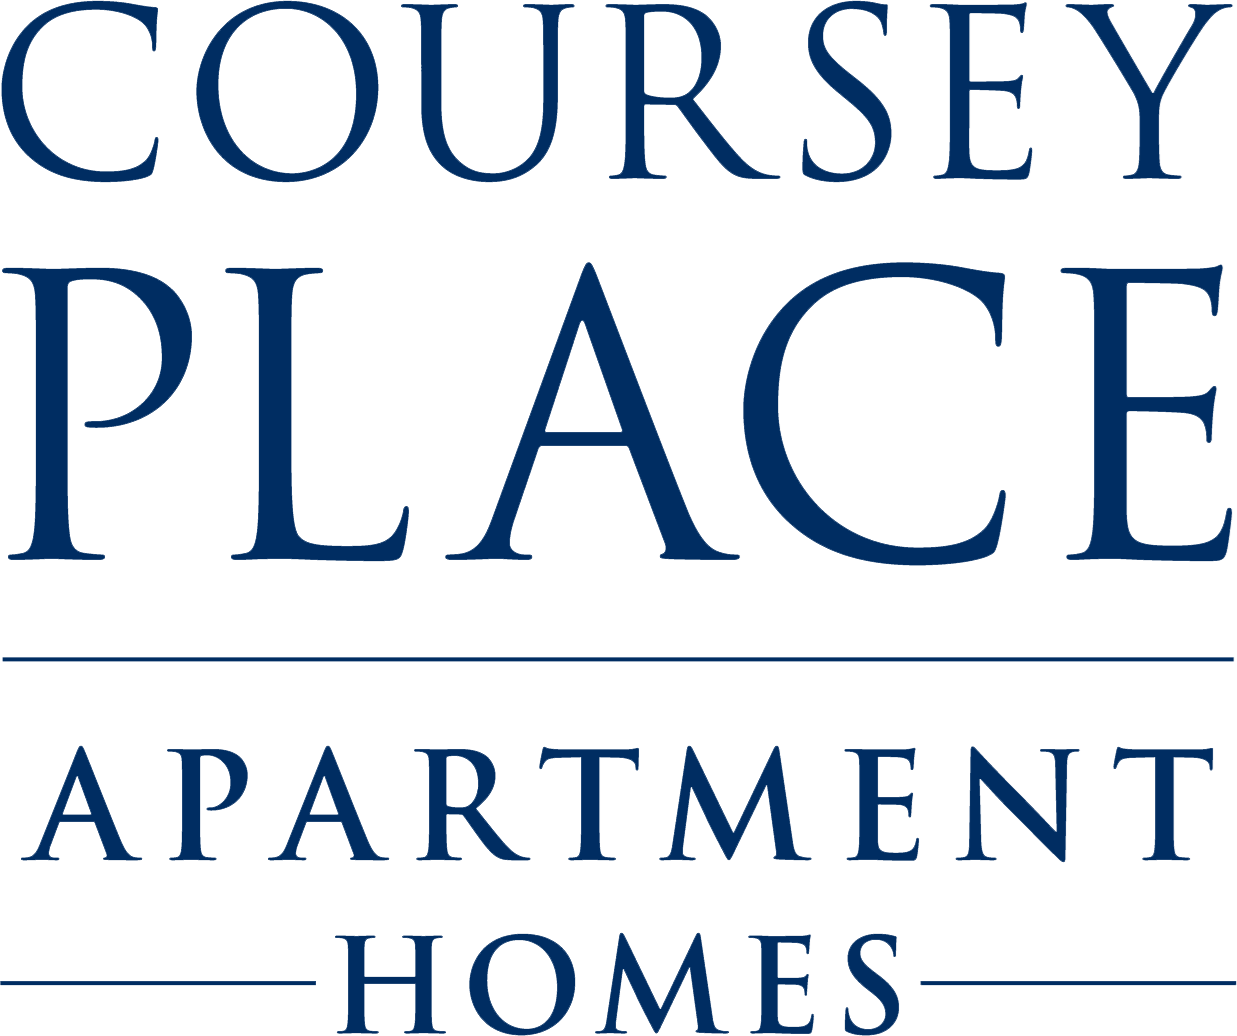 Coursey Place Apartment Homes Logo